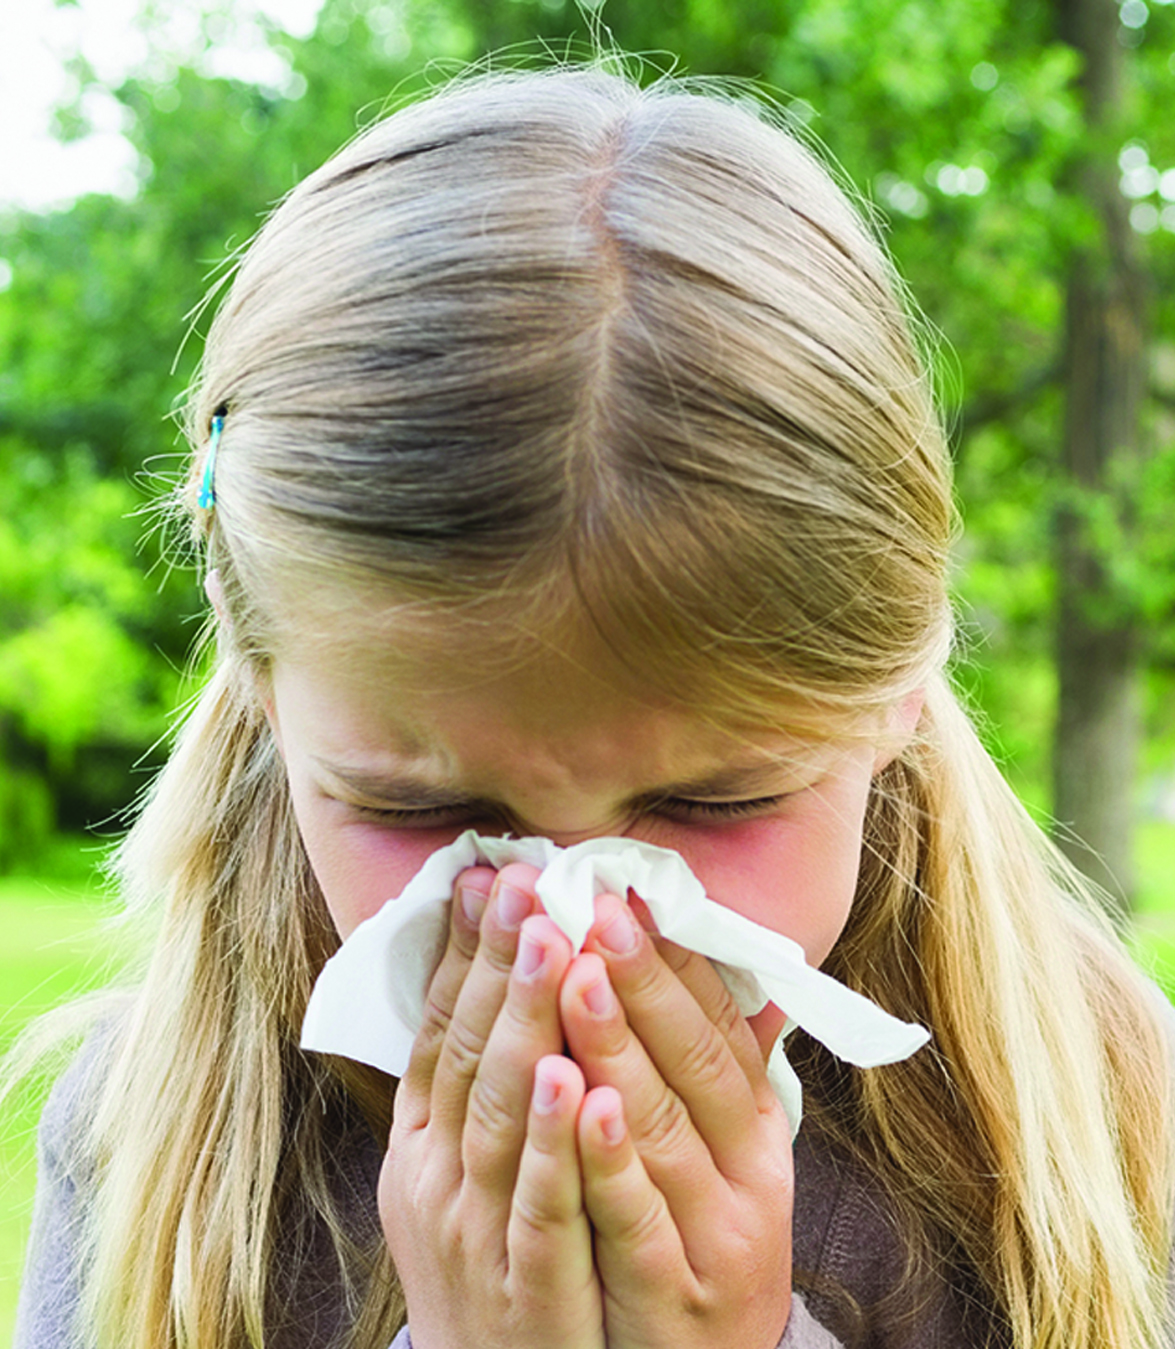 Dealing with Children's Fall Allergies